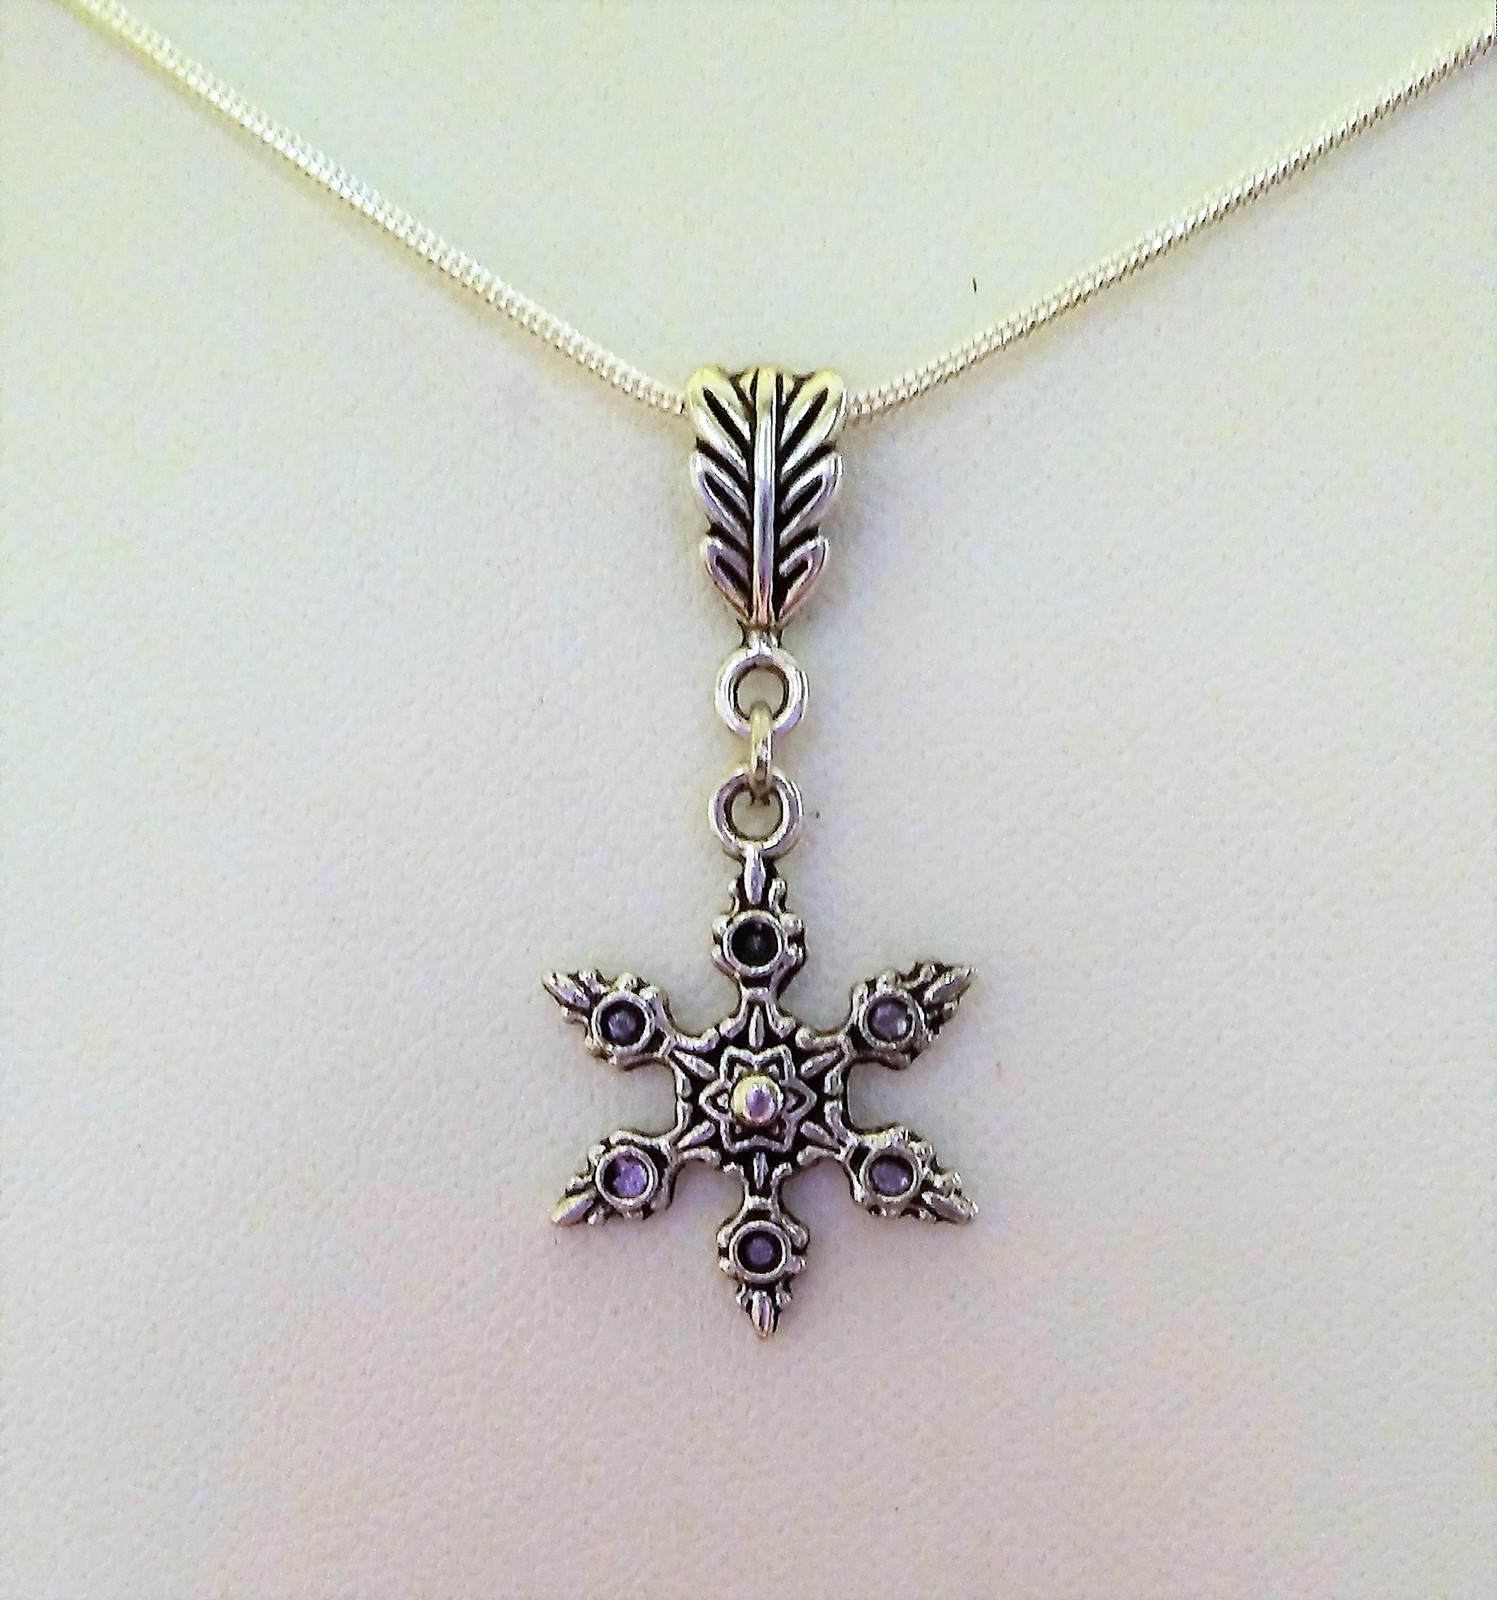 Simple Single Snowflake Charm Necklace 22 Inches Long